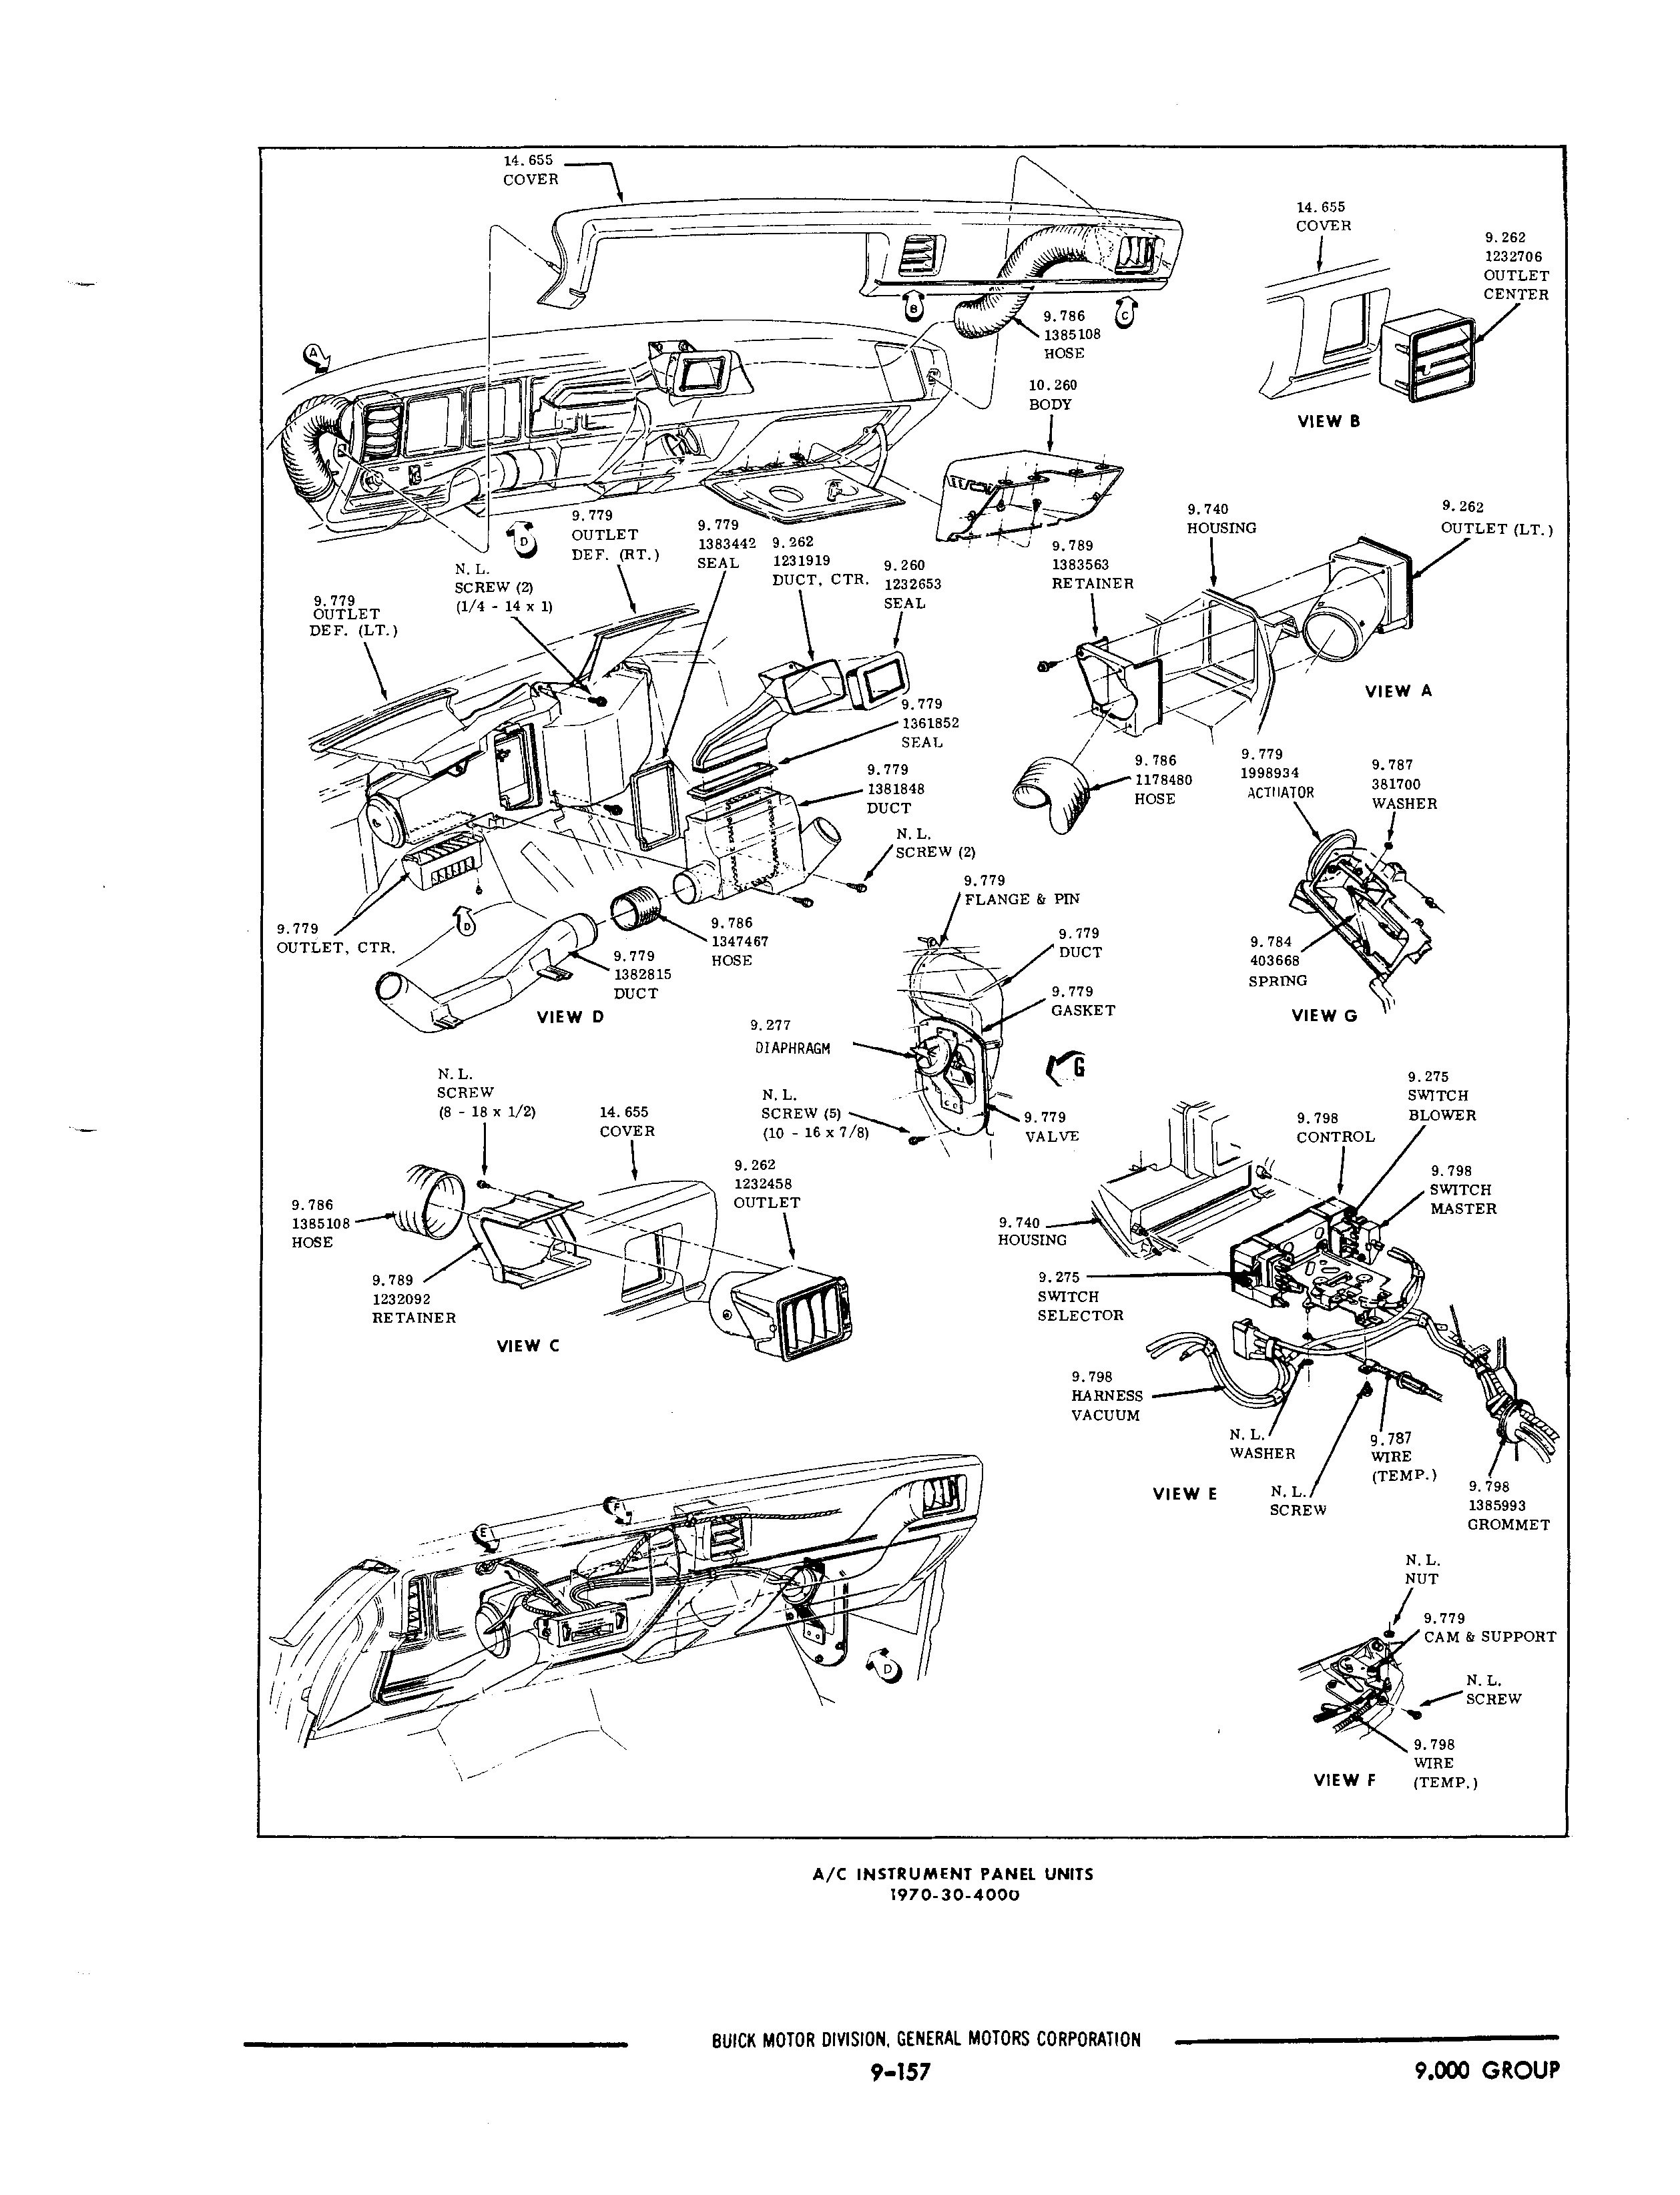 classic chevrolet truck parts catalog